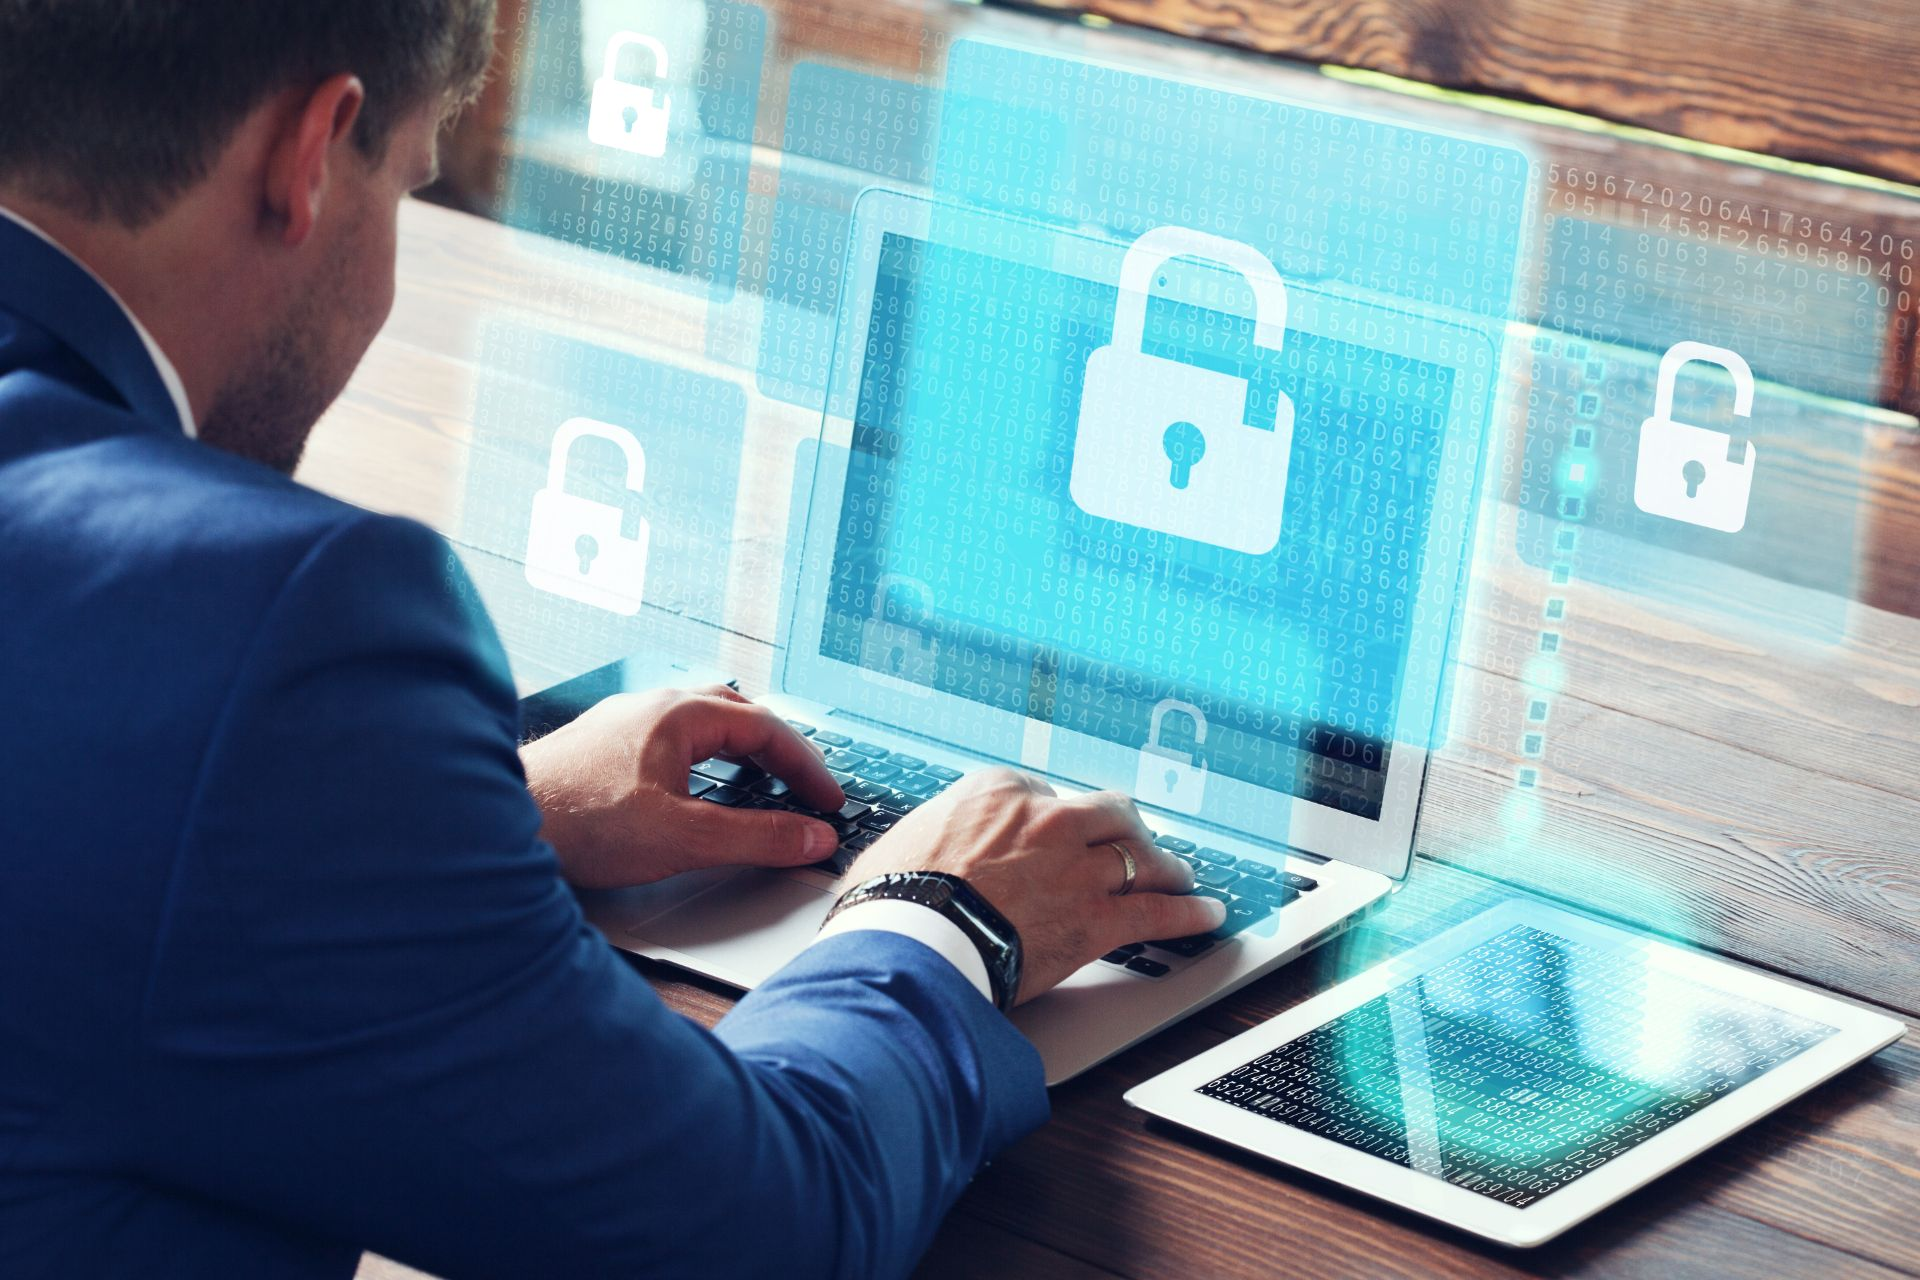 Data security and consumer privacy